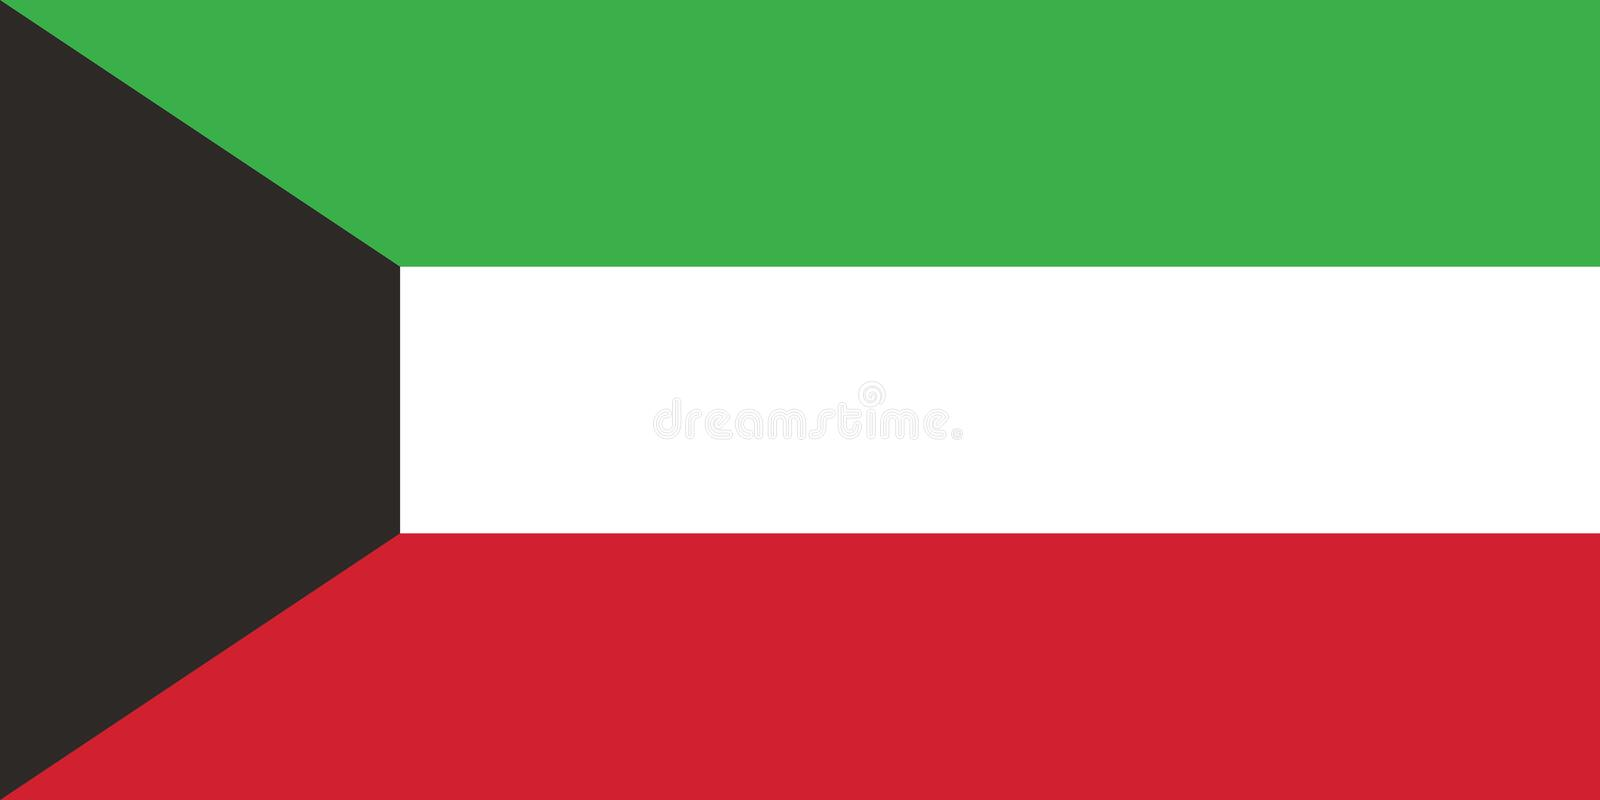 Vector Image of Kuwait Flag, The official and exact Kuwaiti flag dimensions and colors vector illustration